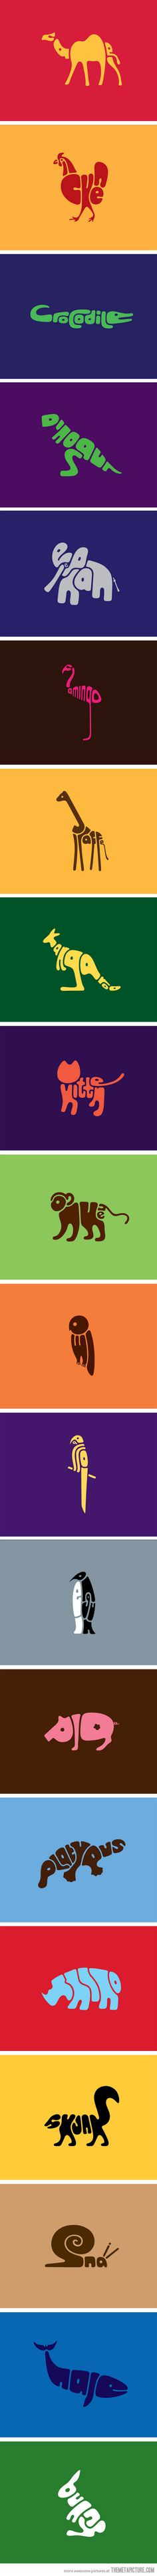 cool-animal-drawing-words